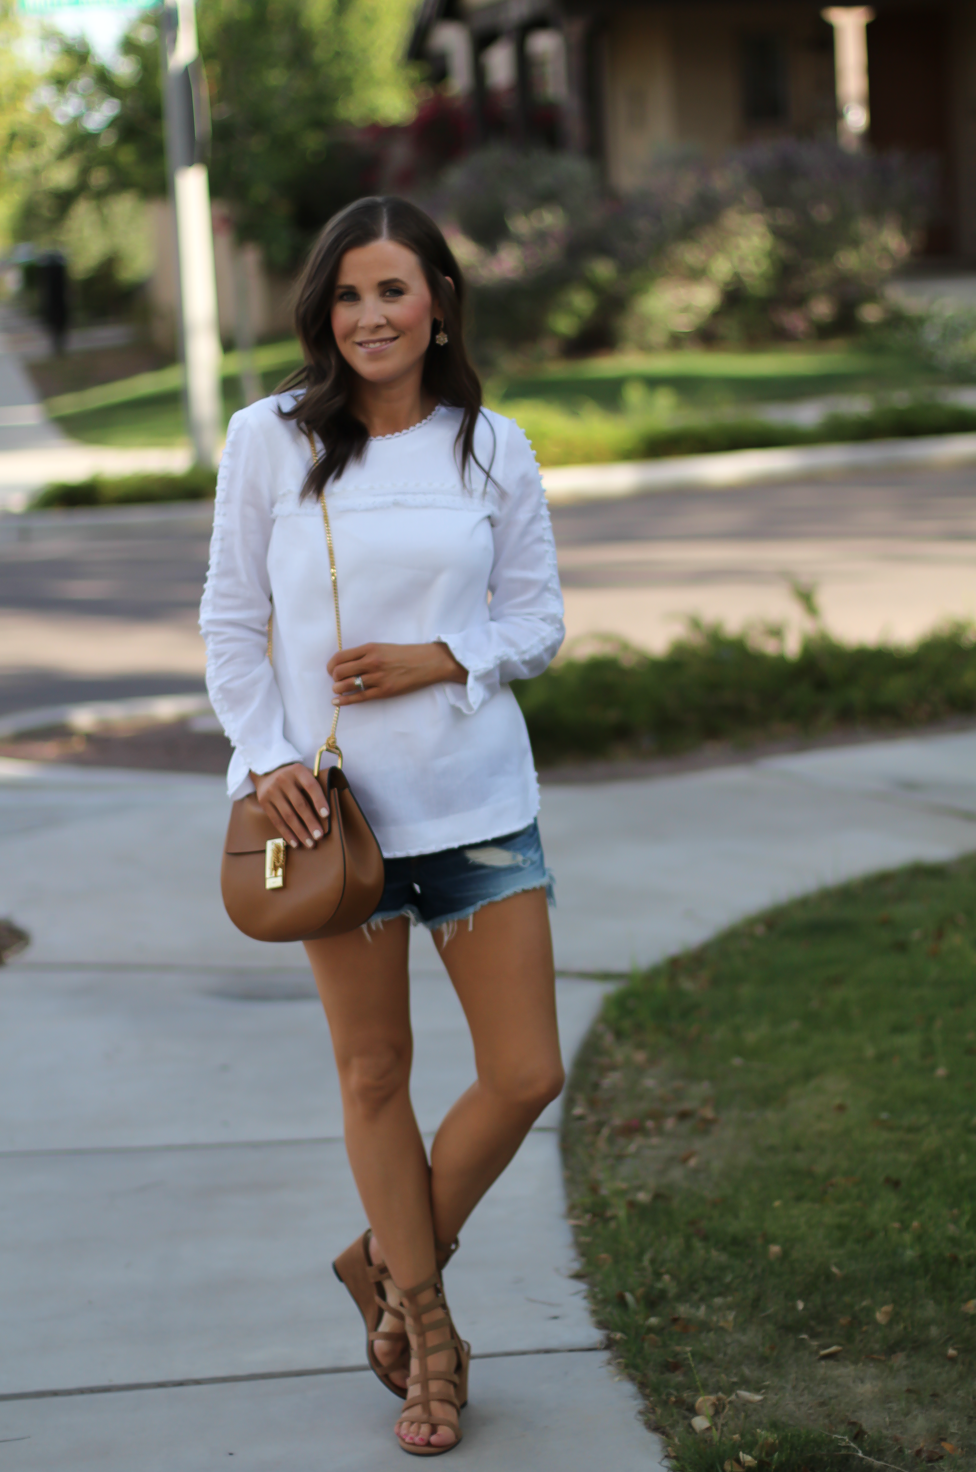 Denim Cutoff Jean Shorts, White Linen Blouse, Gladiator Wedge Sandals, Chain Strap Leather Crossbody Bag, Rag and Bone, J.Crew, Stuart Weitzman, Chloe 15